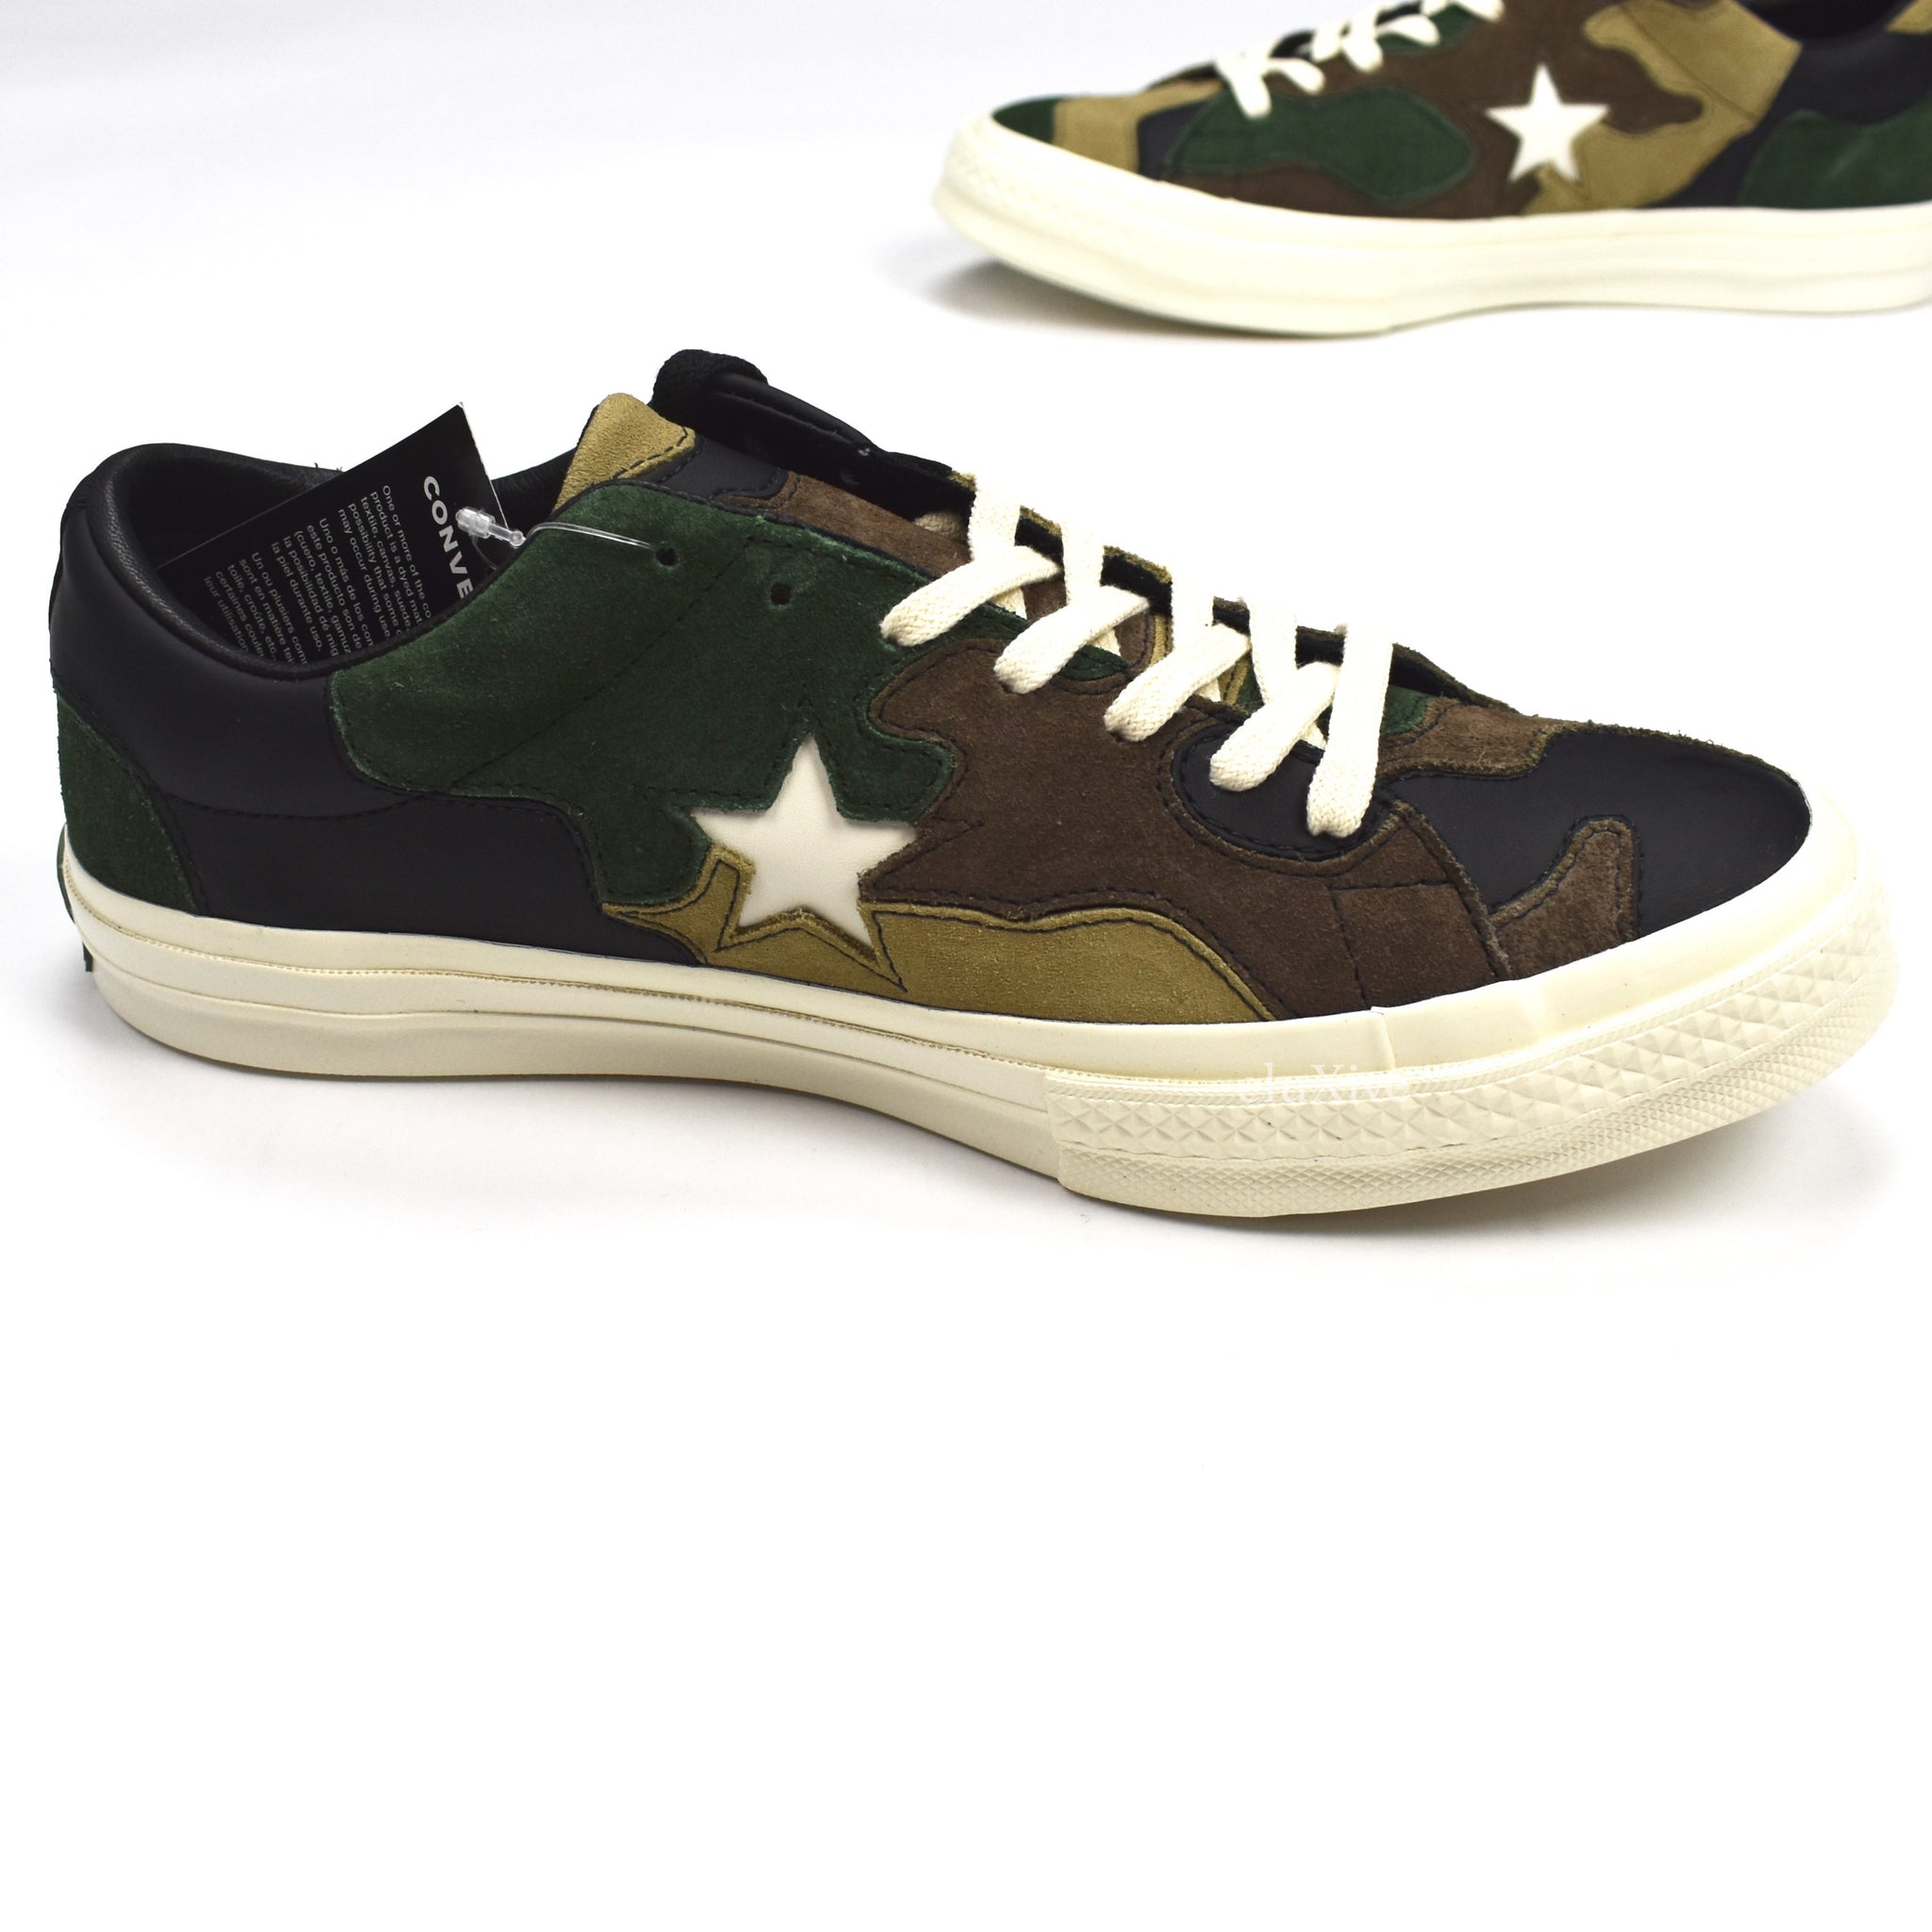 Converse x Sneakersnstuff - One Star Patchwork Camo Sneakers